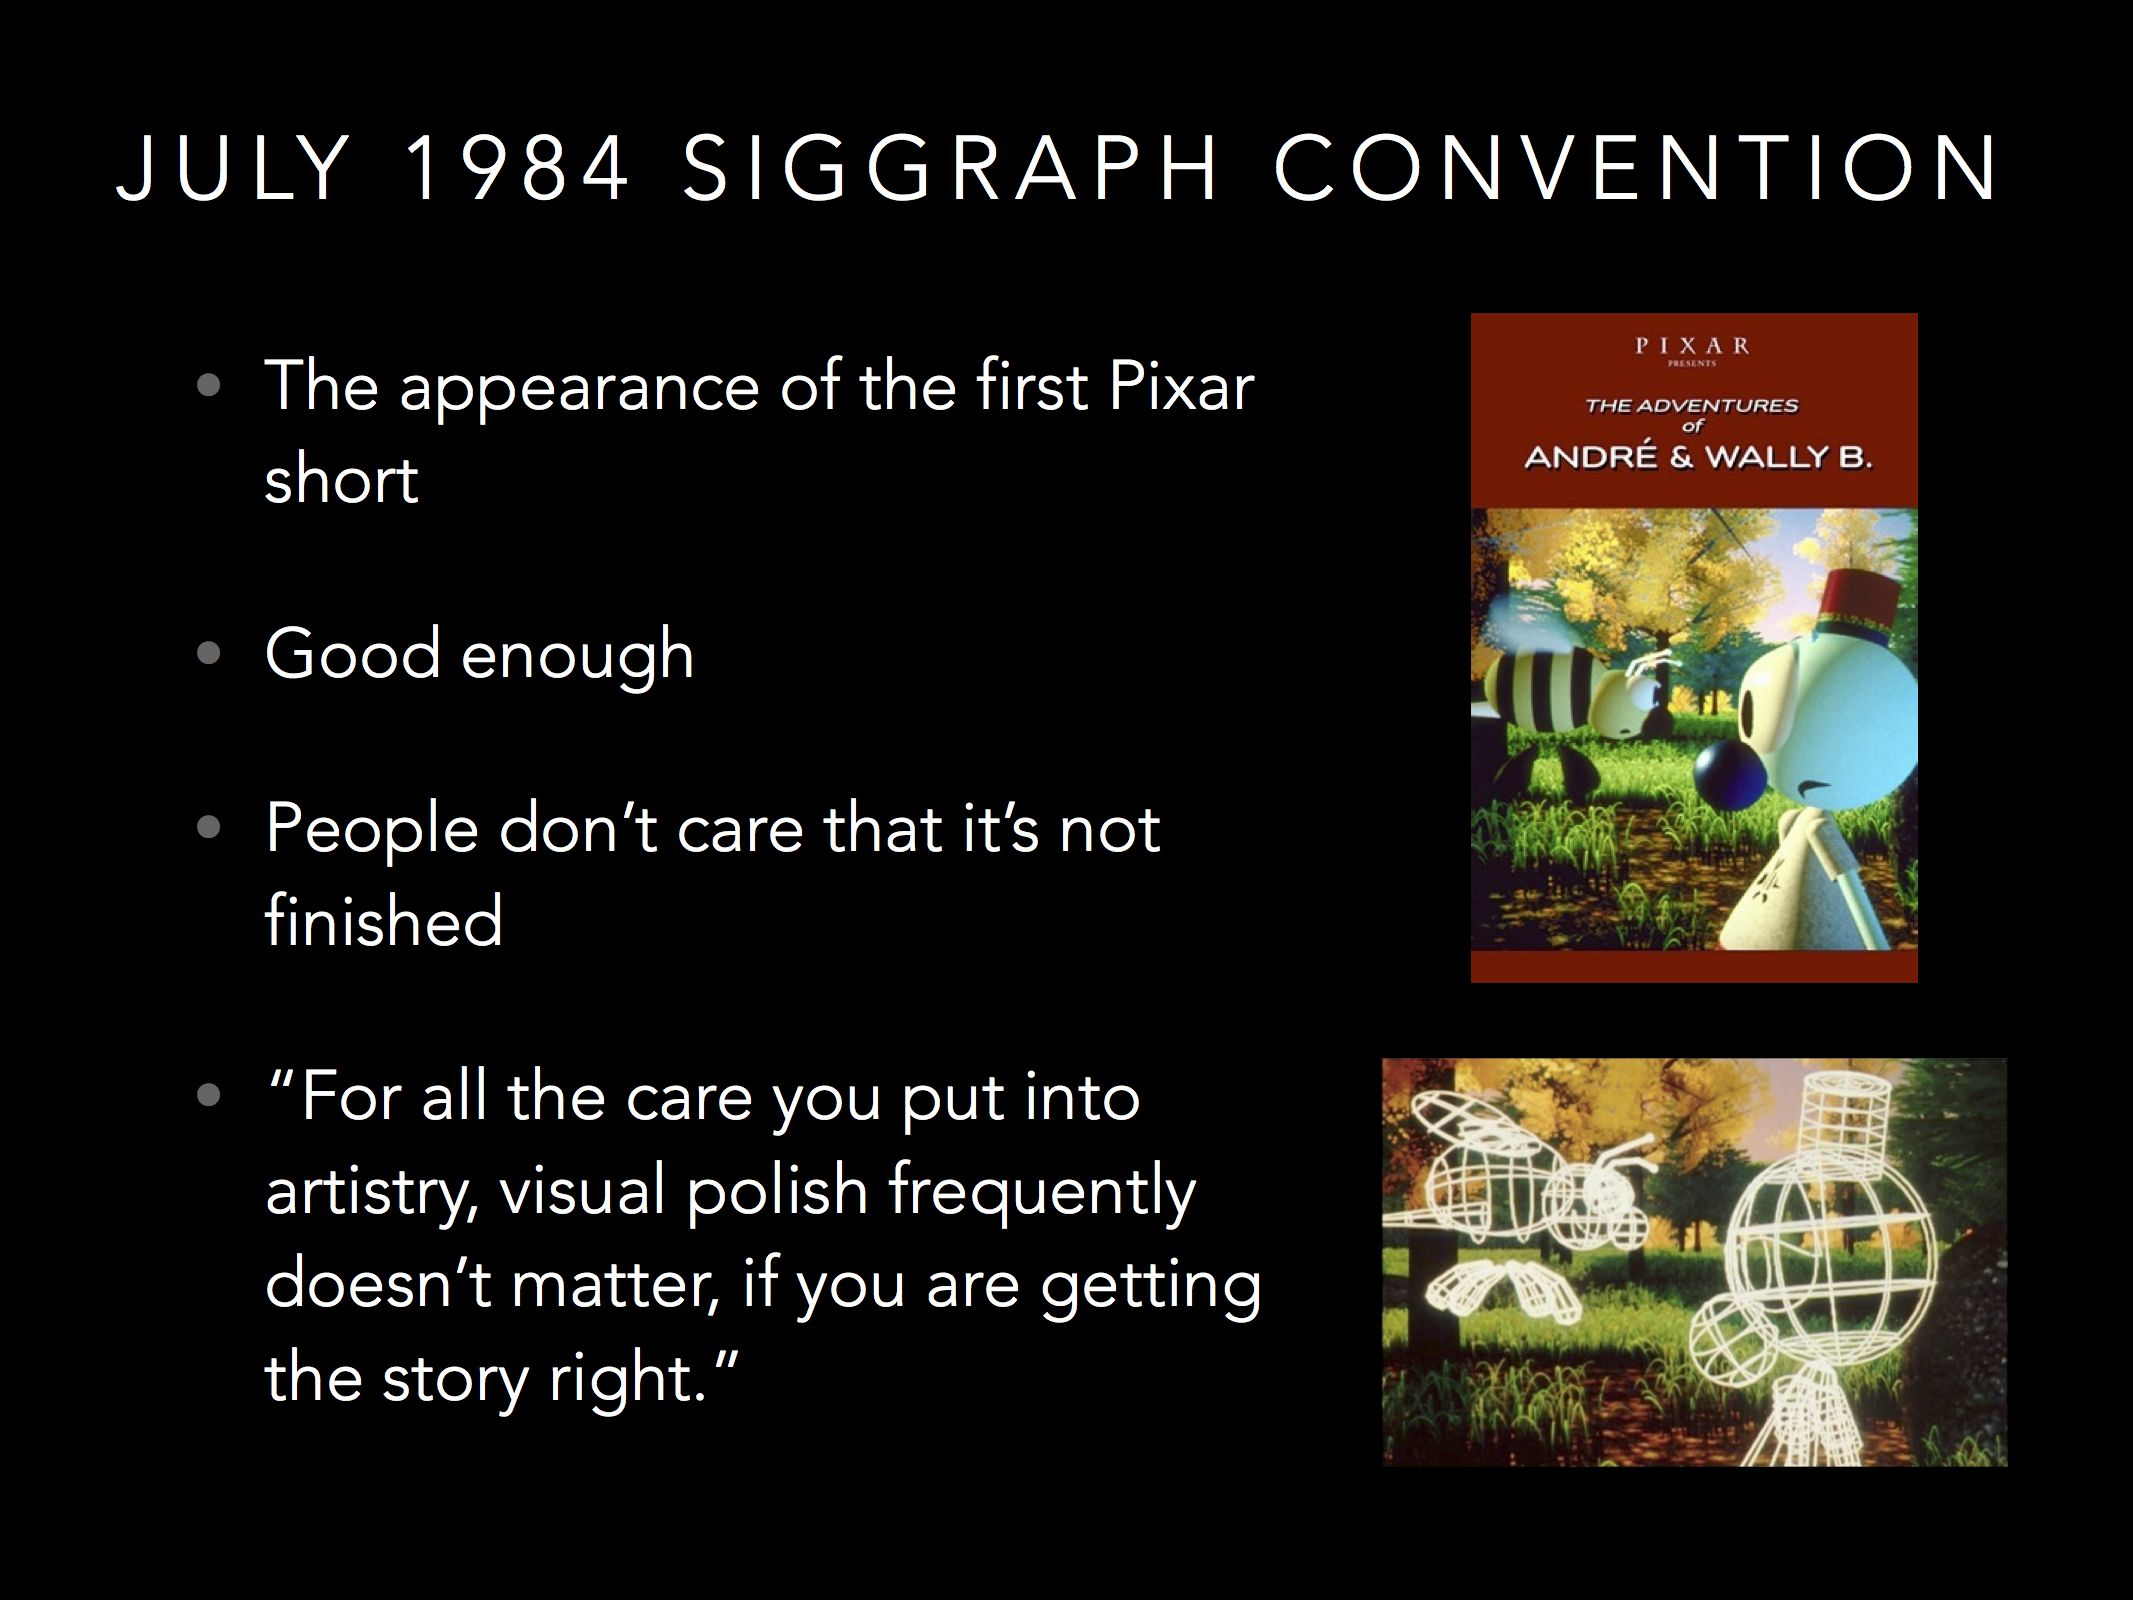 Pixar was so far behind production for their first public demo that some of the scenes had to be shown in wireframe version. Surprisingly, most people were so caught up in the story that they never noticed! Don't wait. Test what you have!